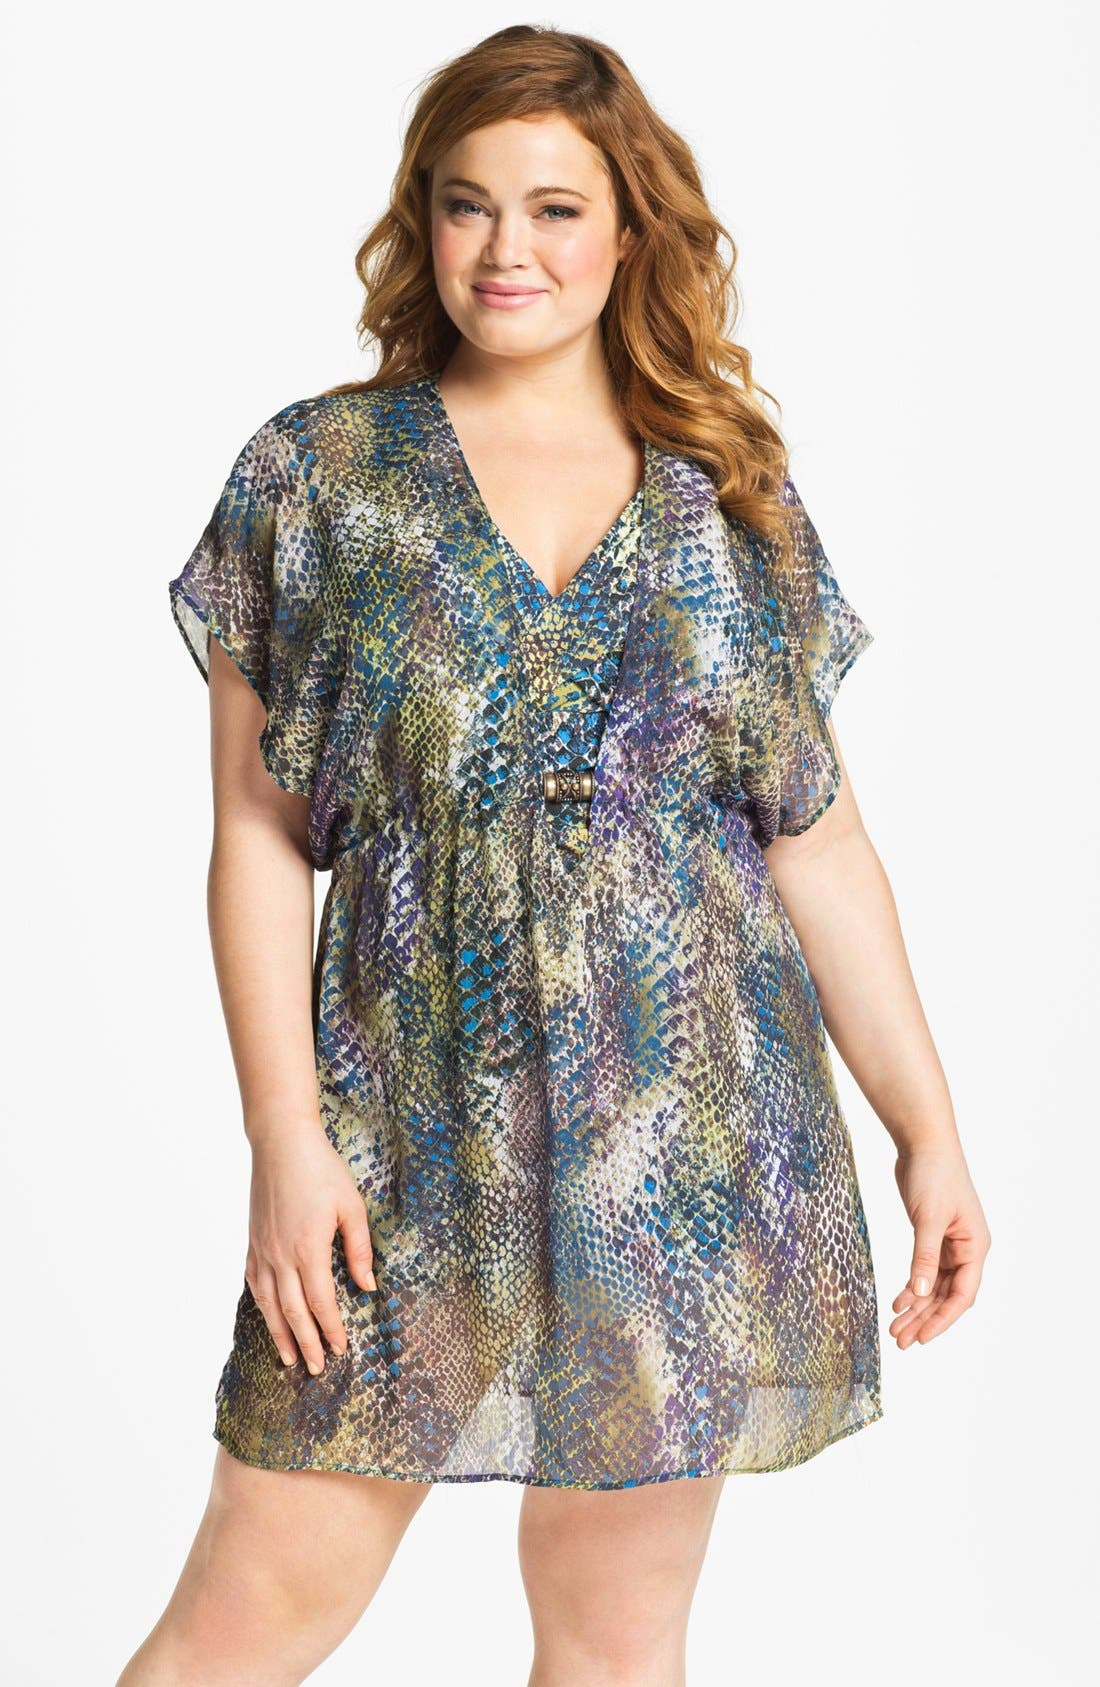 Alternate Image 1 Selected - Becca Etc. 'Mamba' Cover-Up (Plus Size)